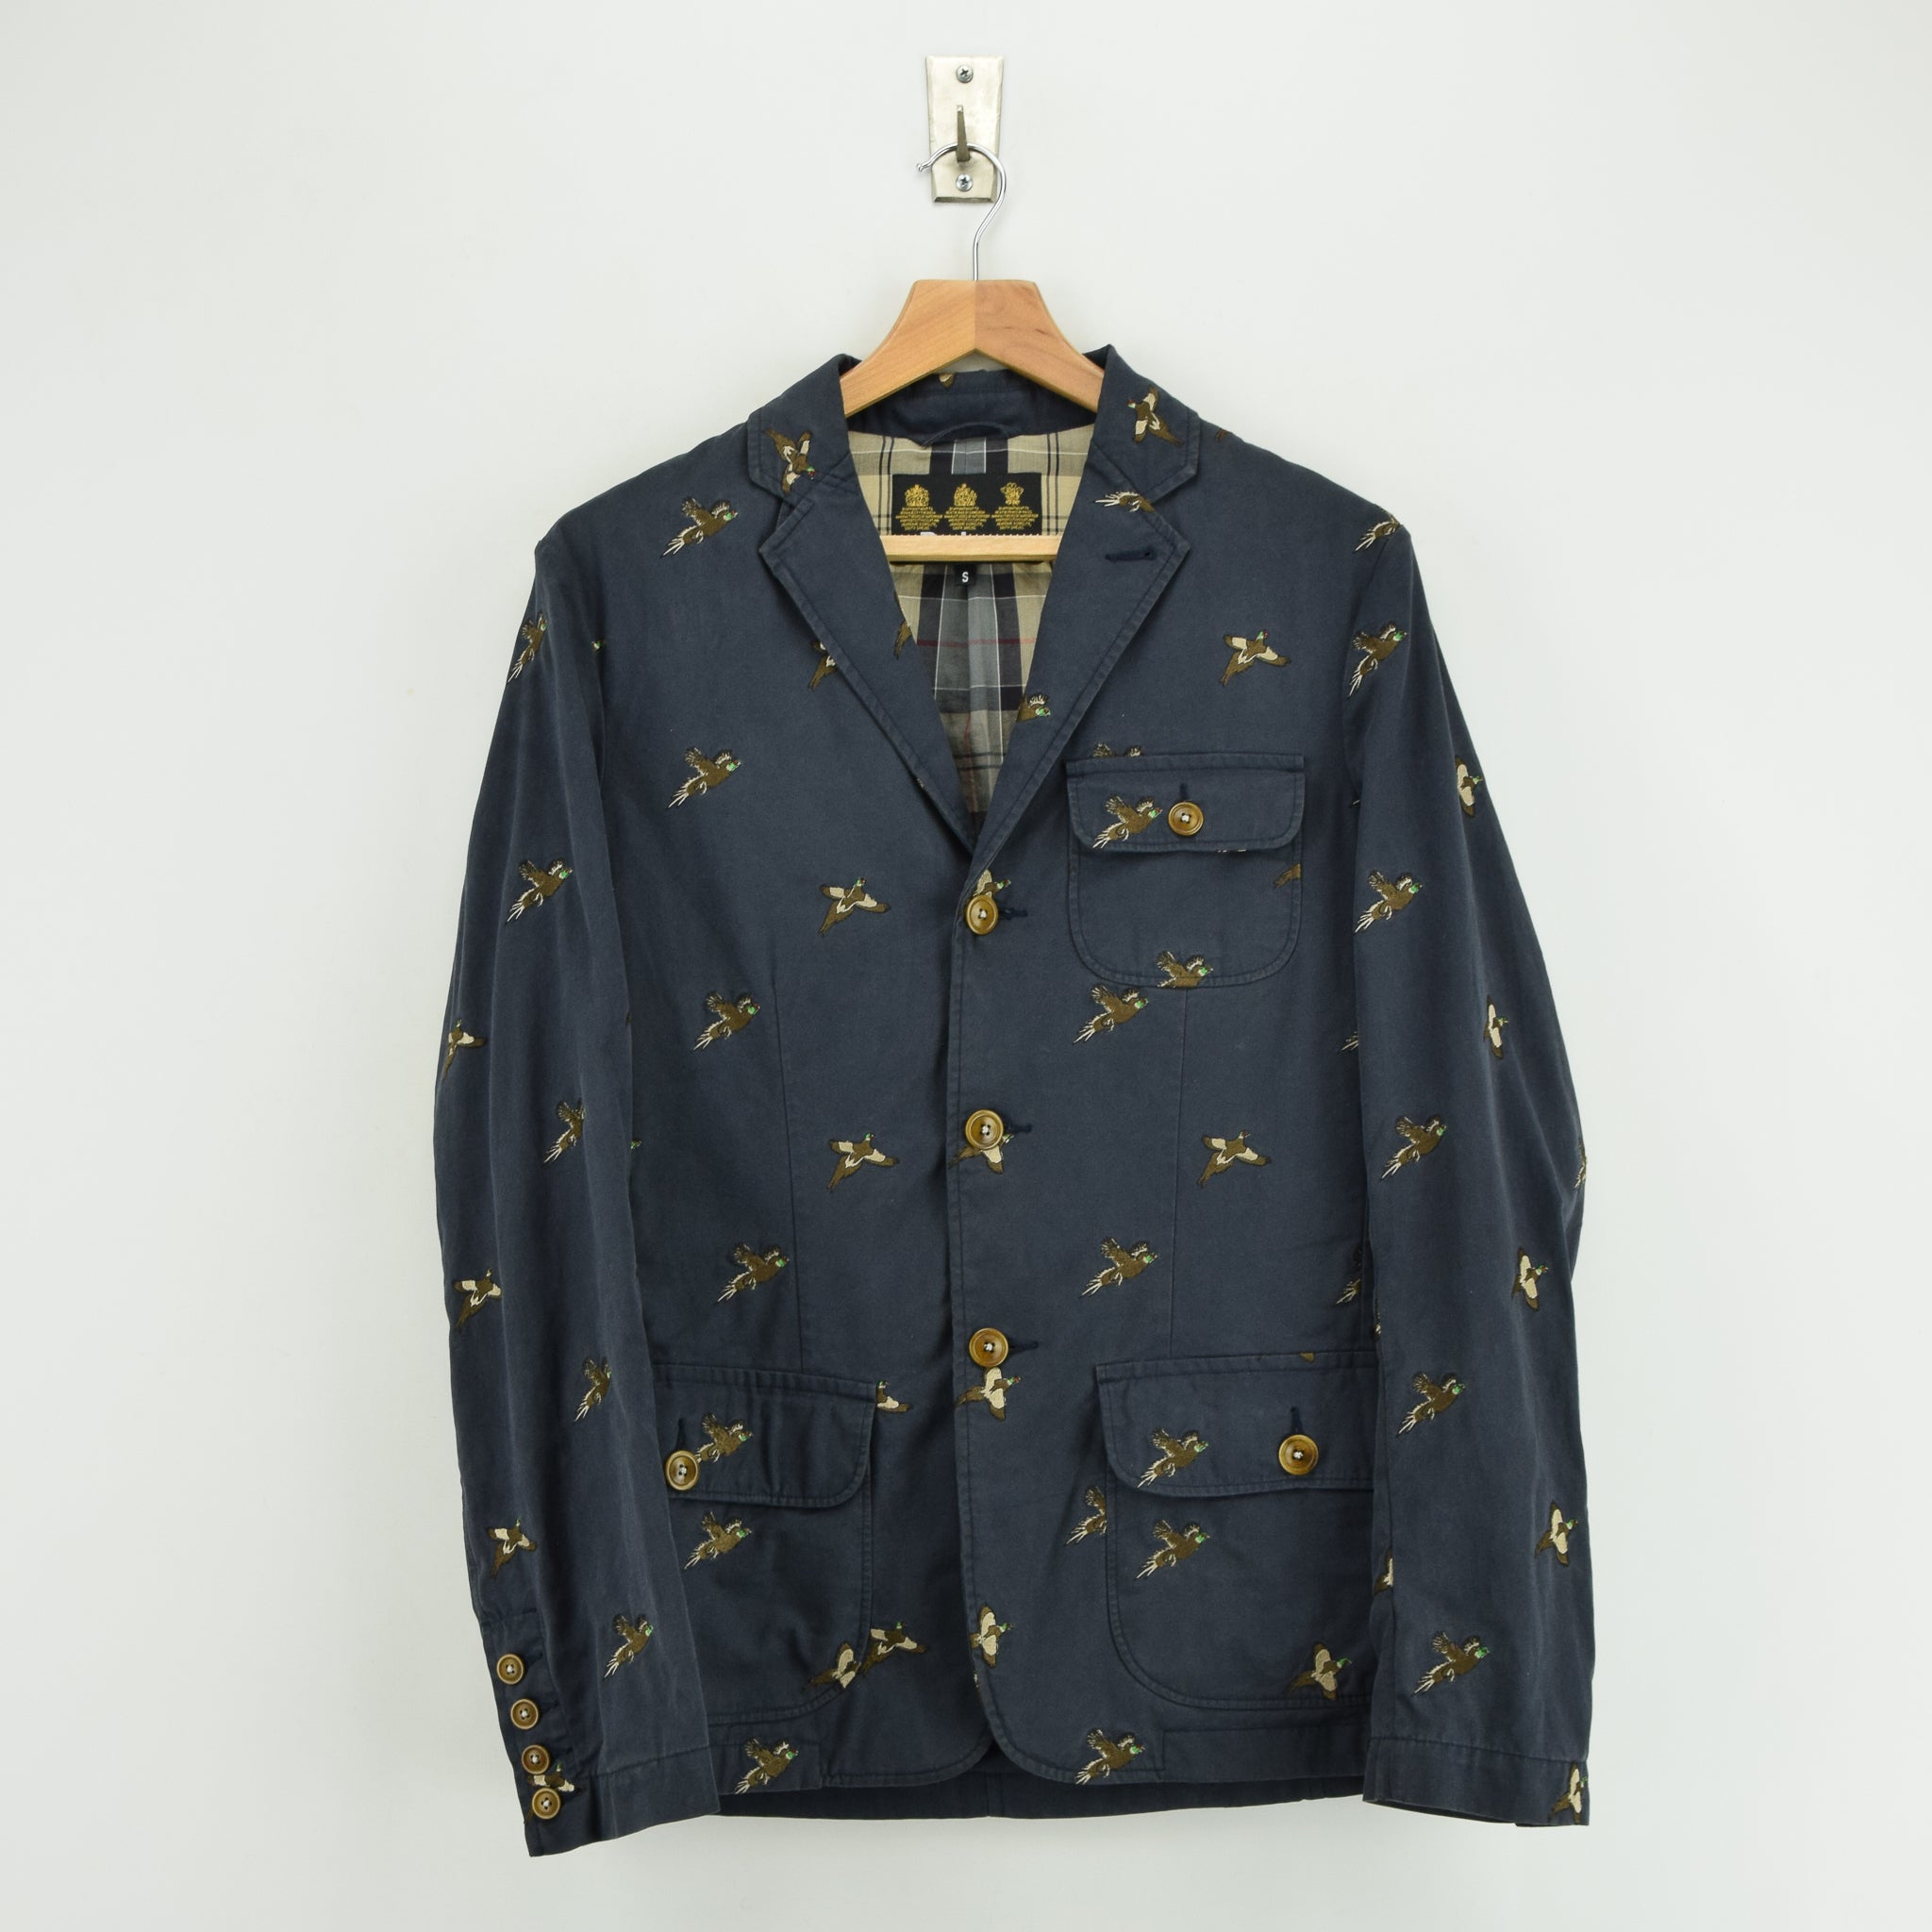 Barbour Navy Blue Cotton Blazer Jacket With Duck Print S front